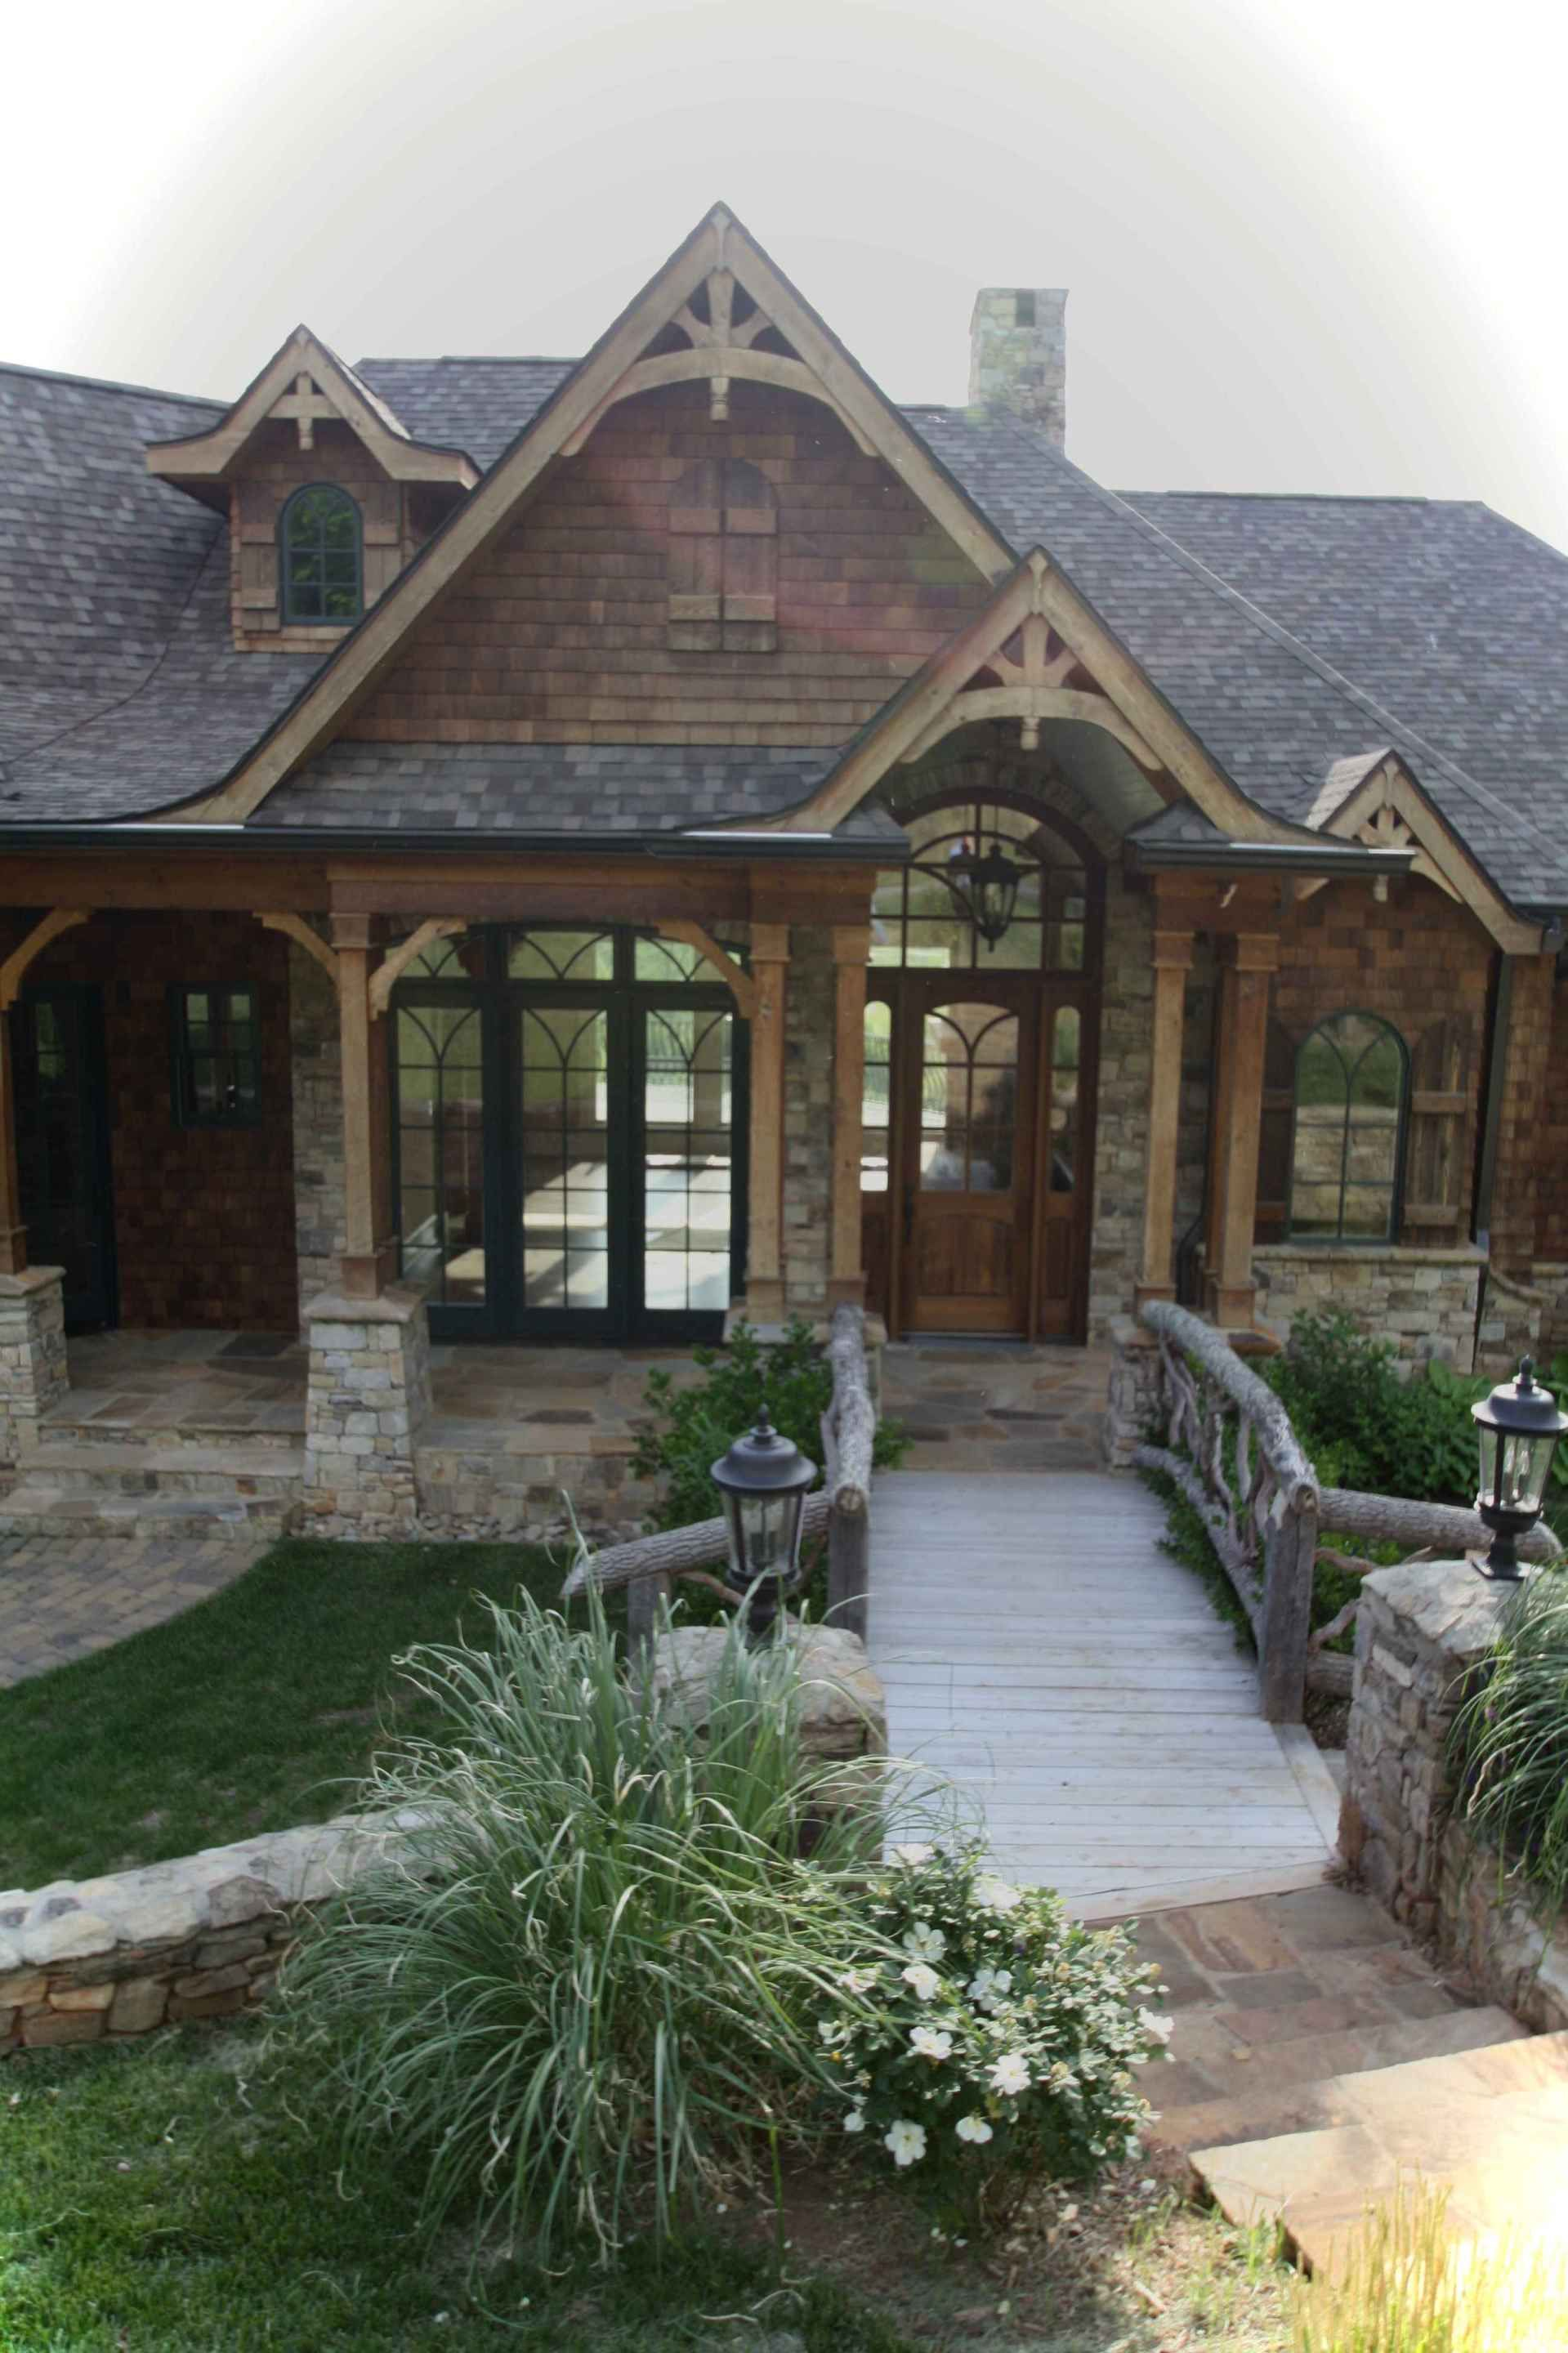 Awesome Cottage House Exterior Ideas Ranch Style 11 Lovelyving In 2020 Cottage House Exterior Ranch Style House Plans Mountain House Plans